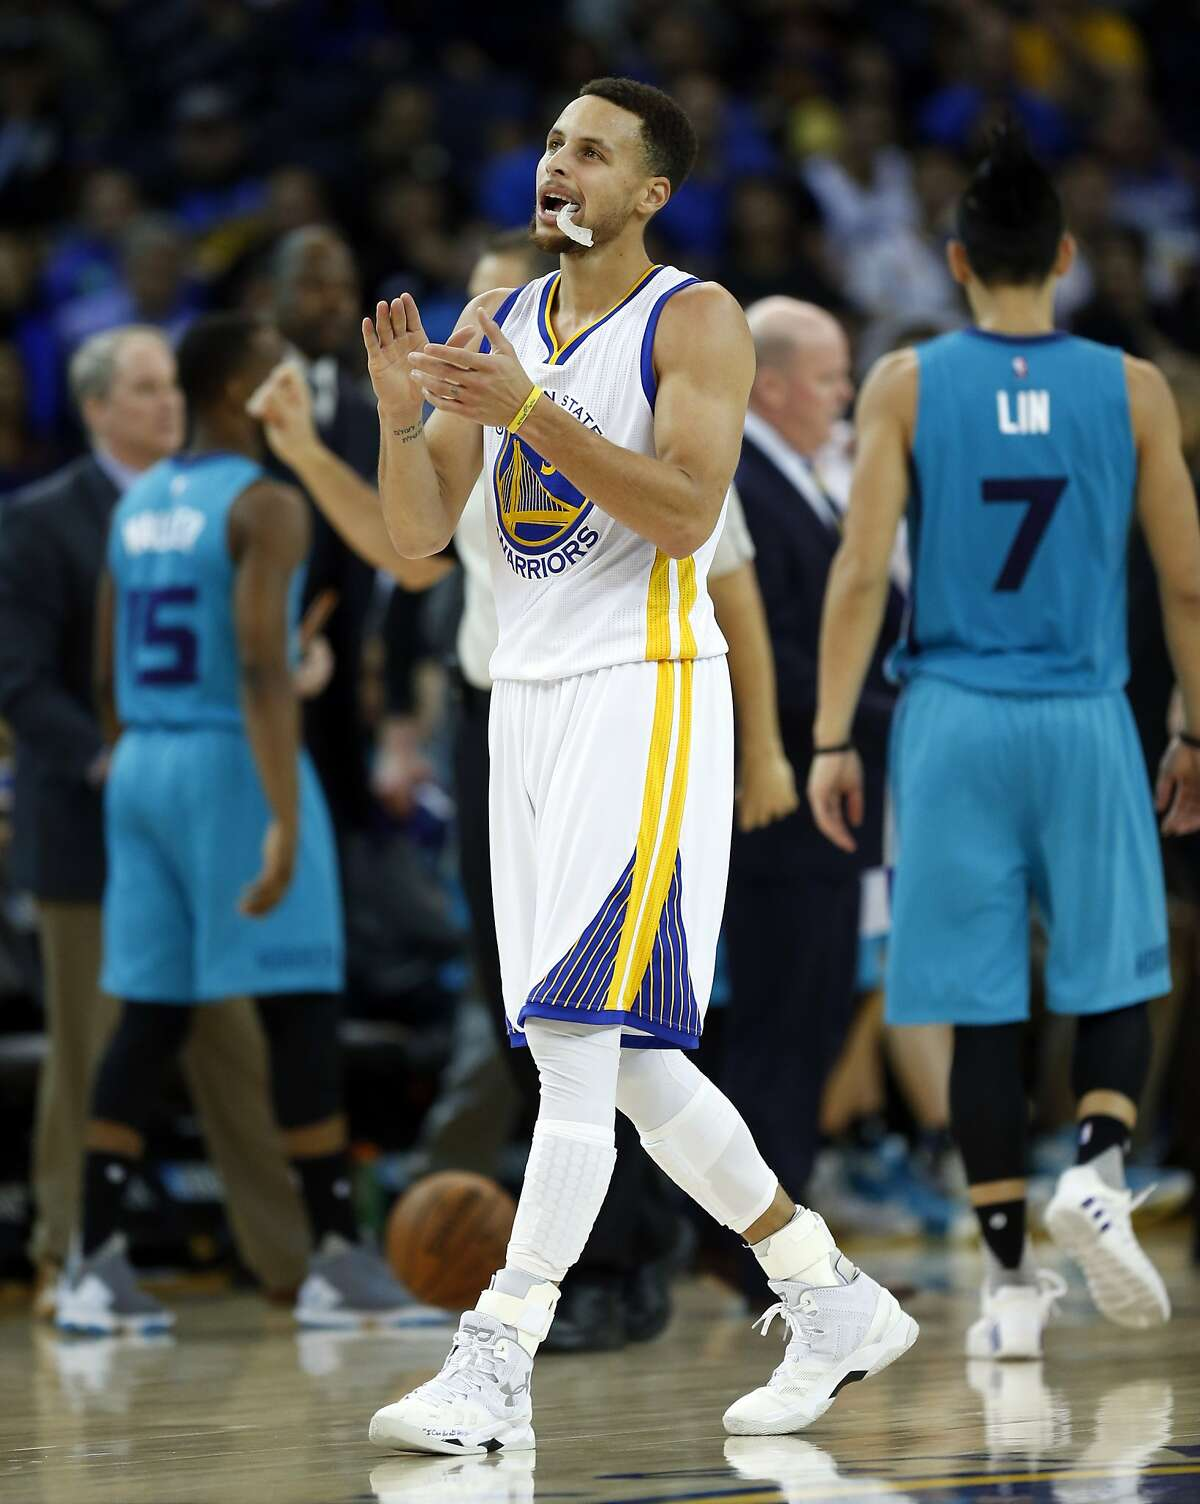 Golden State Warriors' Stephen Curry claps during 1st quarter time out while playing Charlotte Hornets during NBA game at Oracle Arena in Oakland, Calif., on Monday, January 4, 2016.